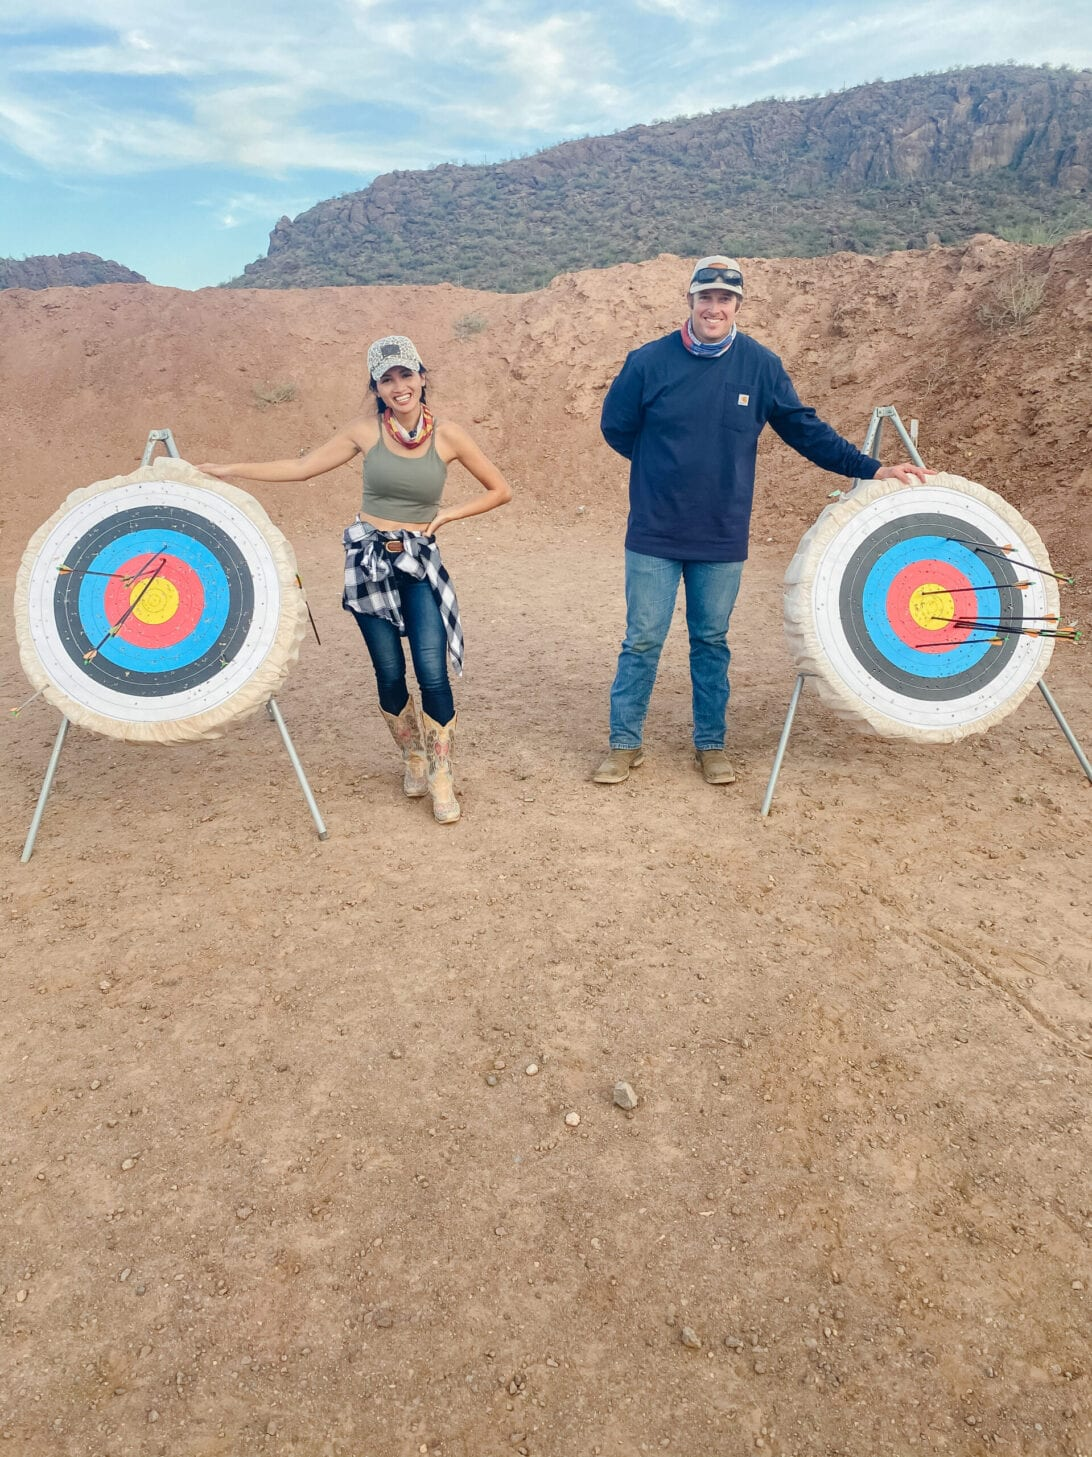 ARCHERY, WHITE STALLION RANCH